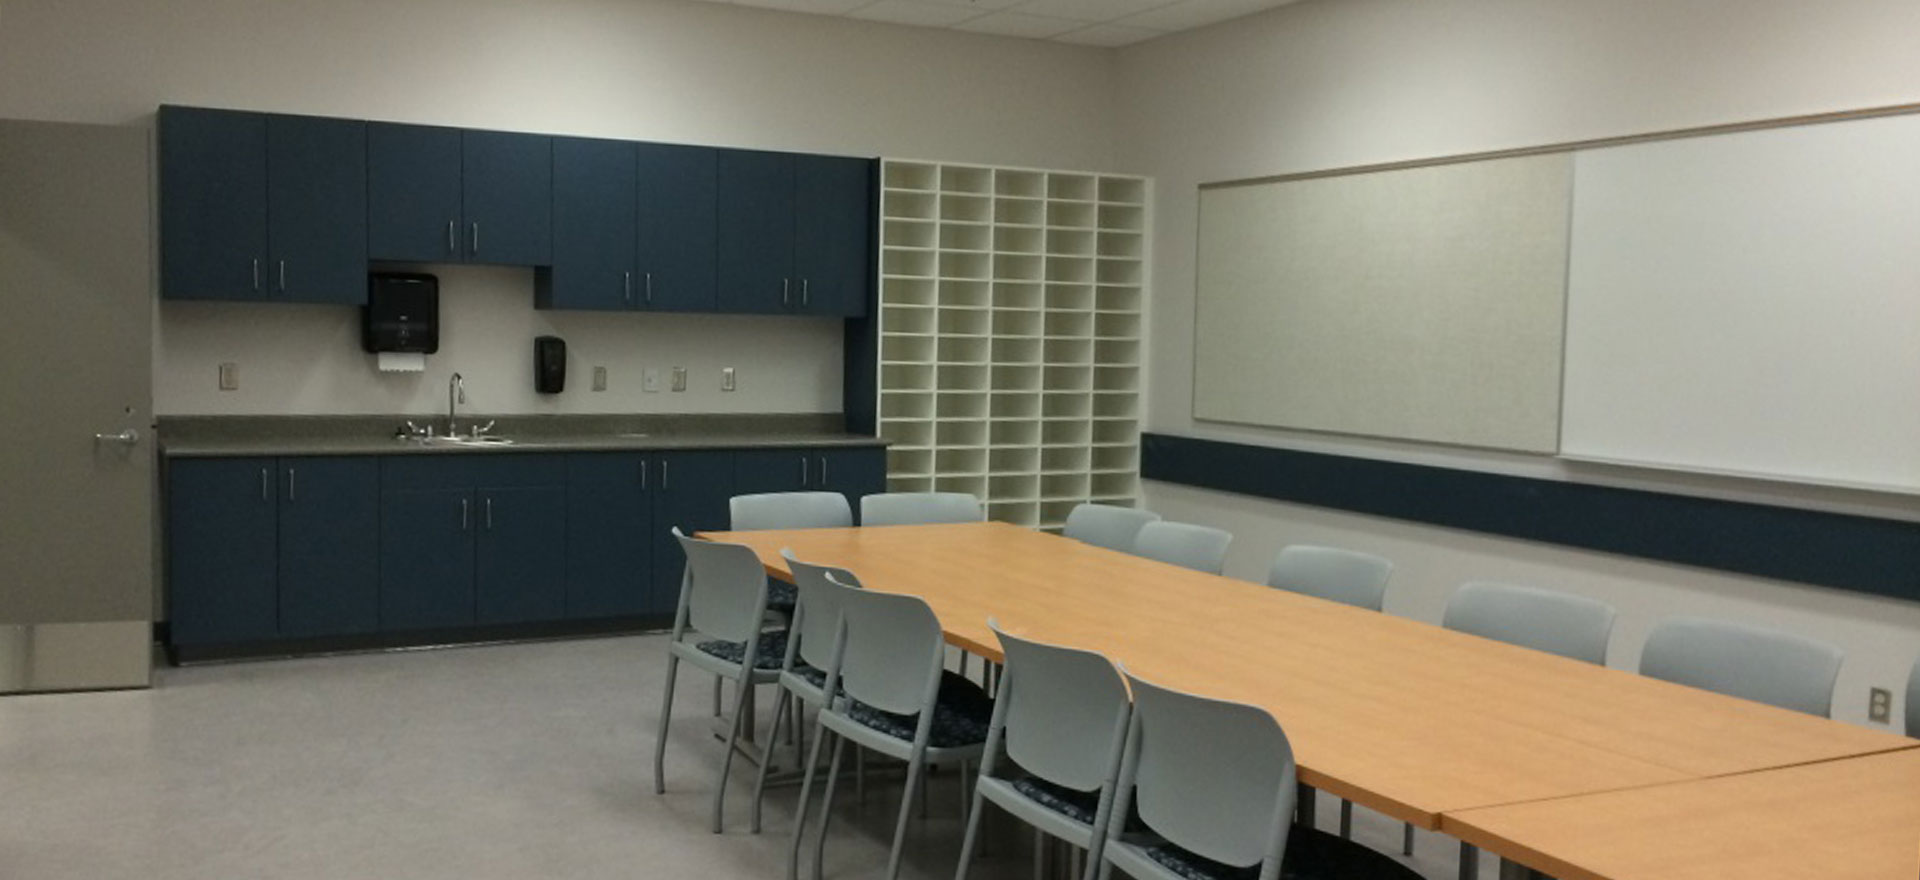 Image Result For Toronto Airport Meeting Rooms